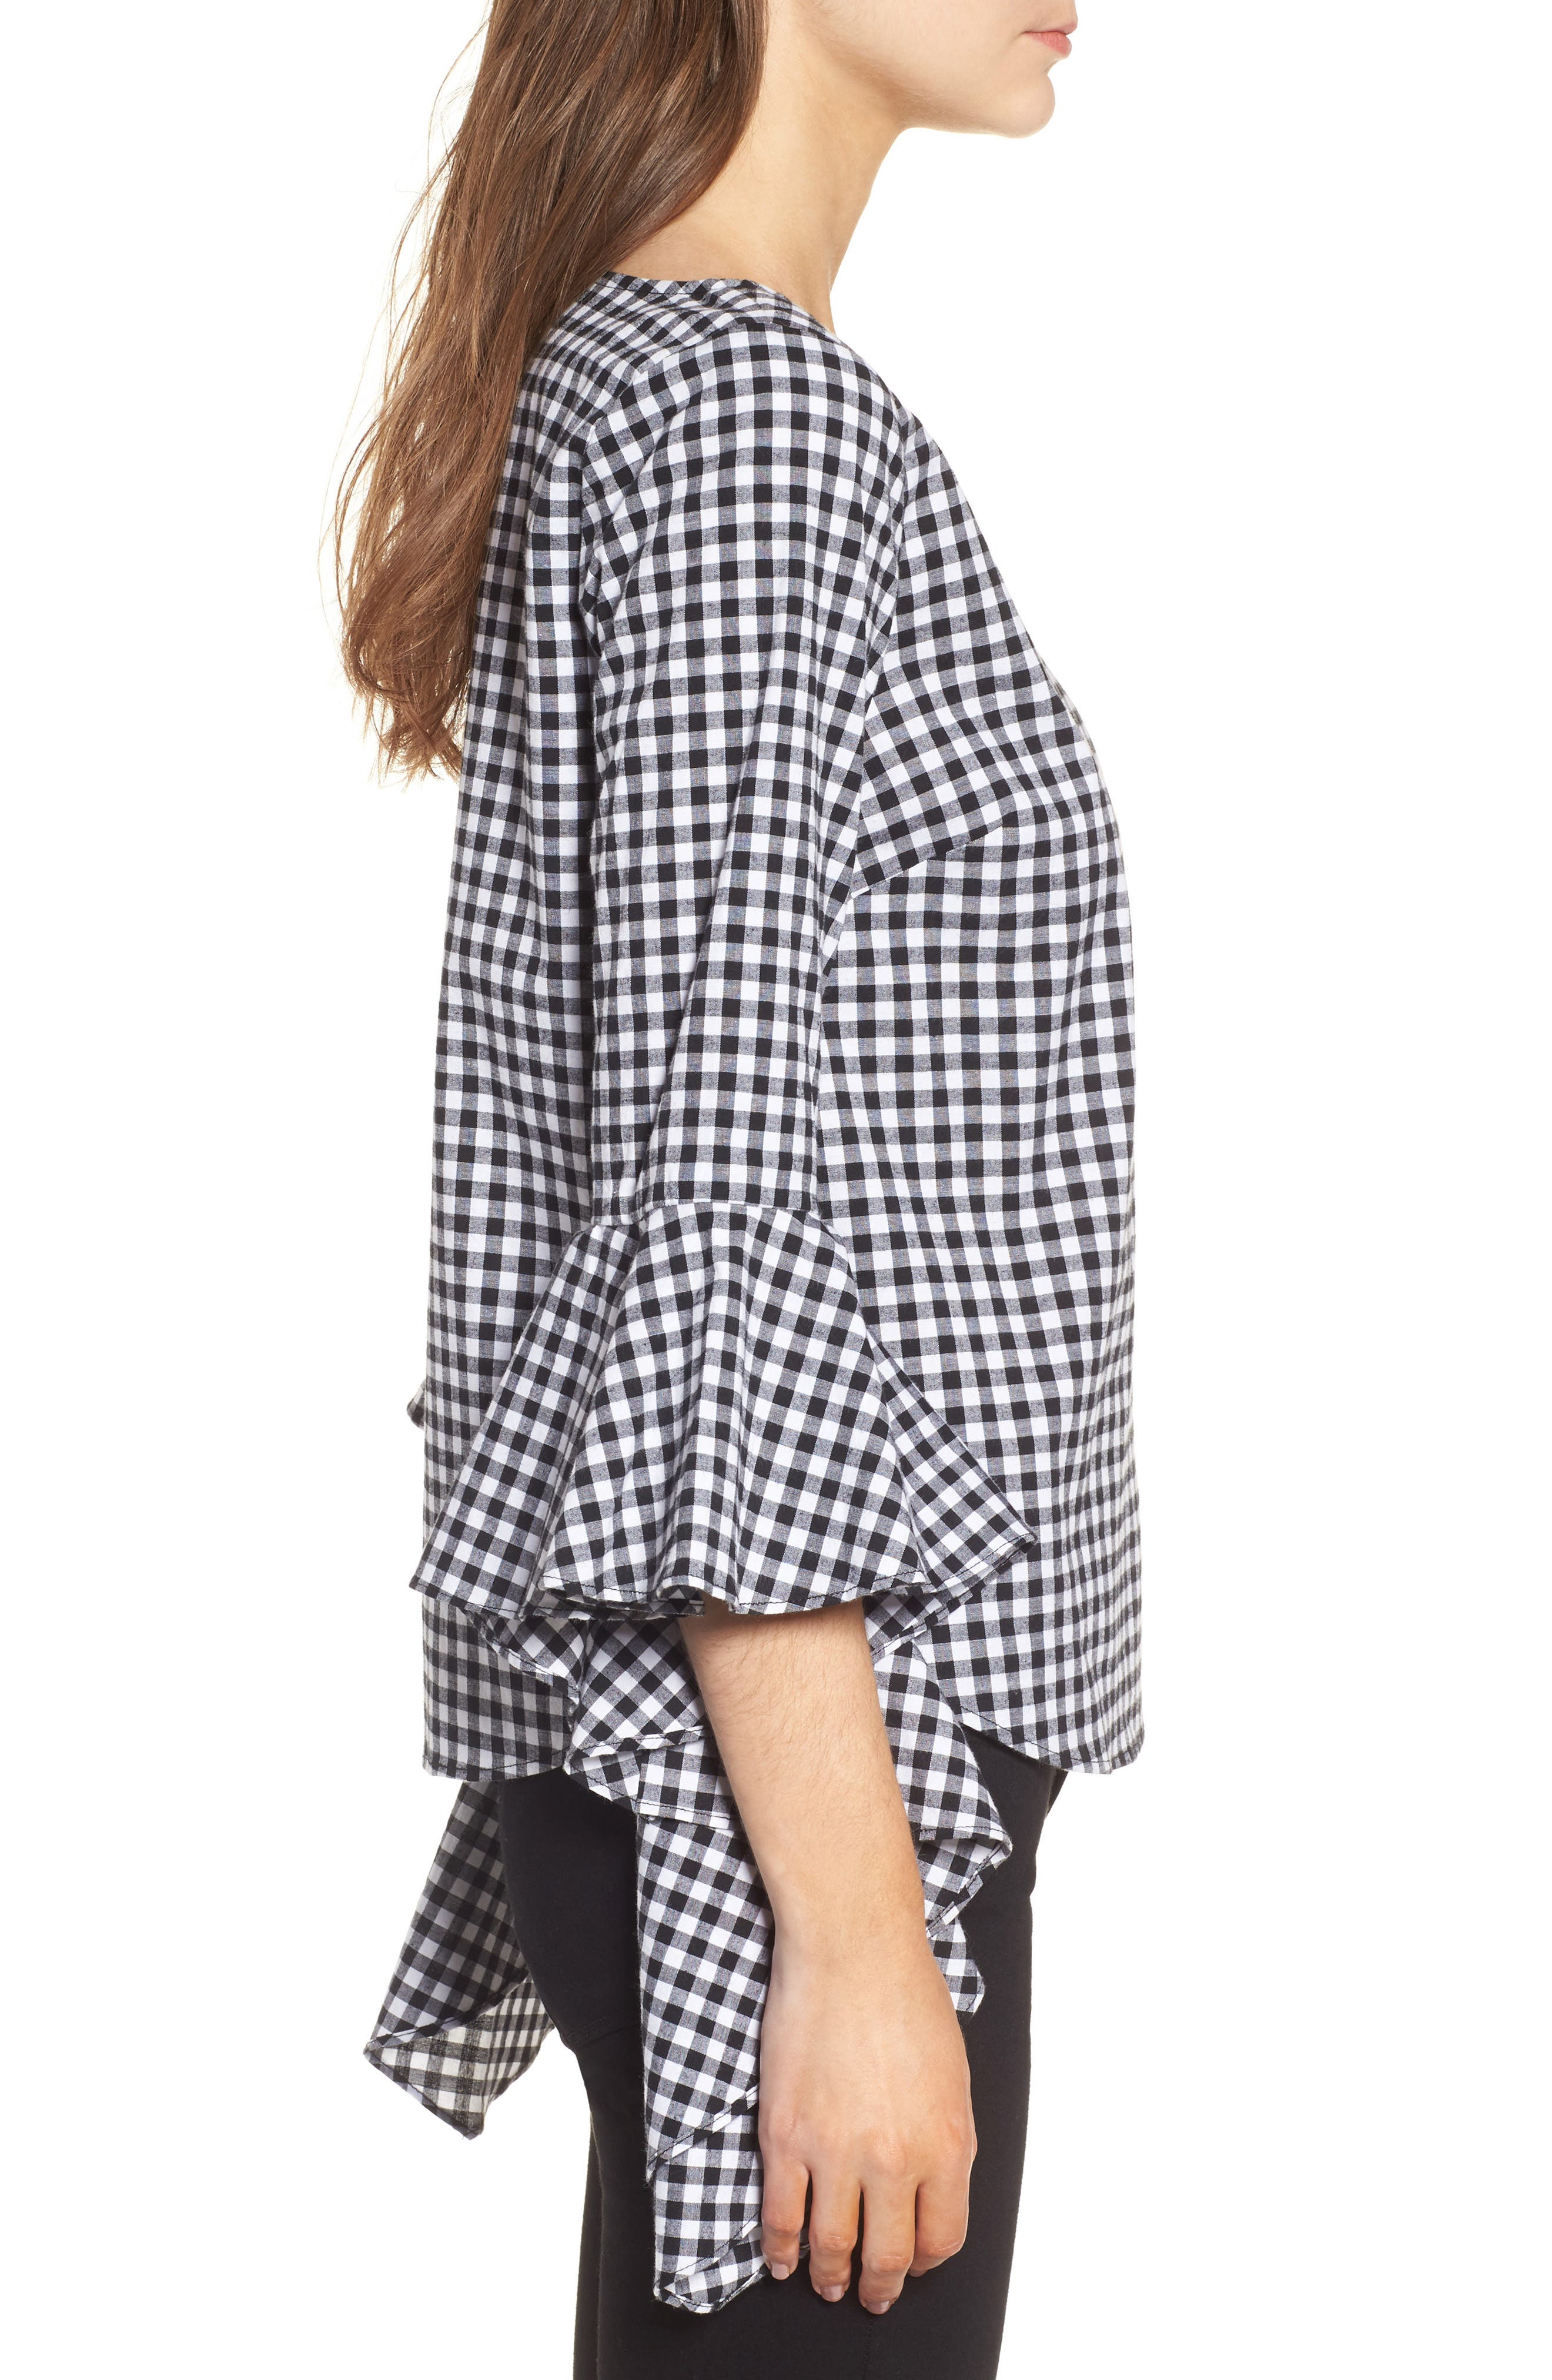 Gingham Ruffle Sleeve Top,                             Alternate thumbnail 3, color,                             Black- White Gingham